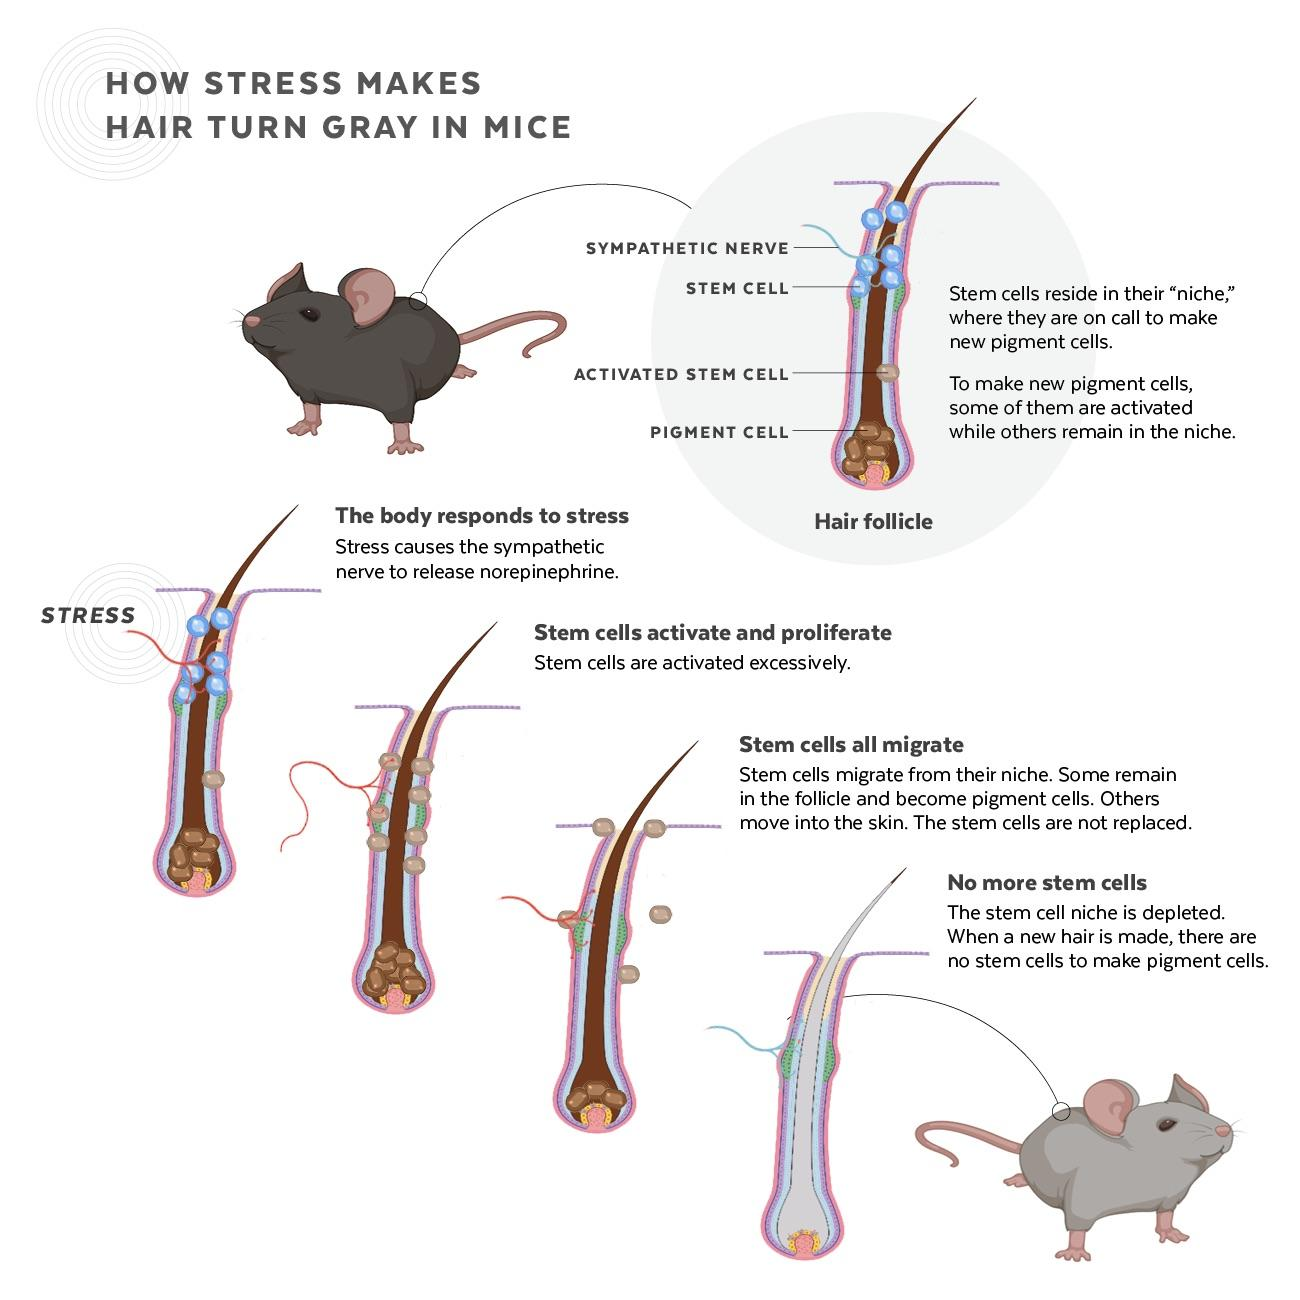 Infographic showing how stem cells are affected by stress.